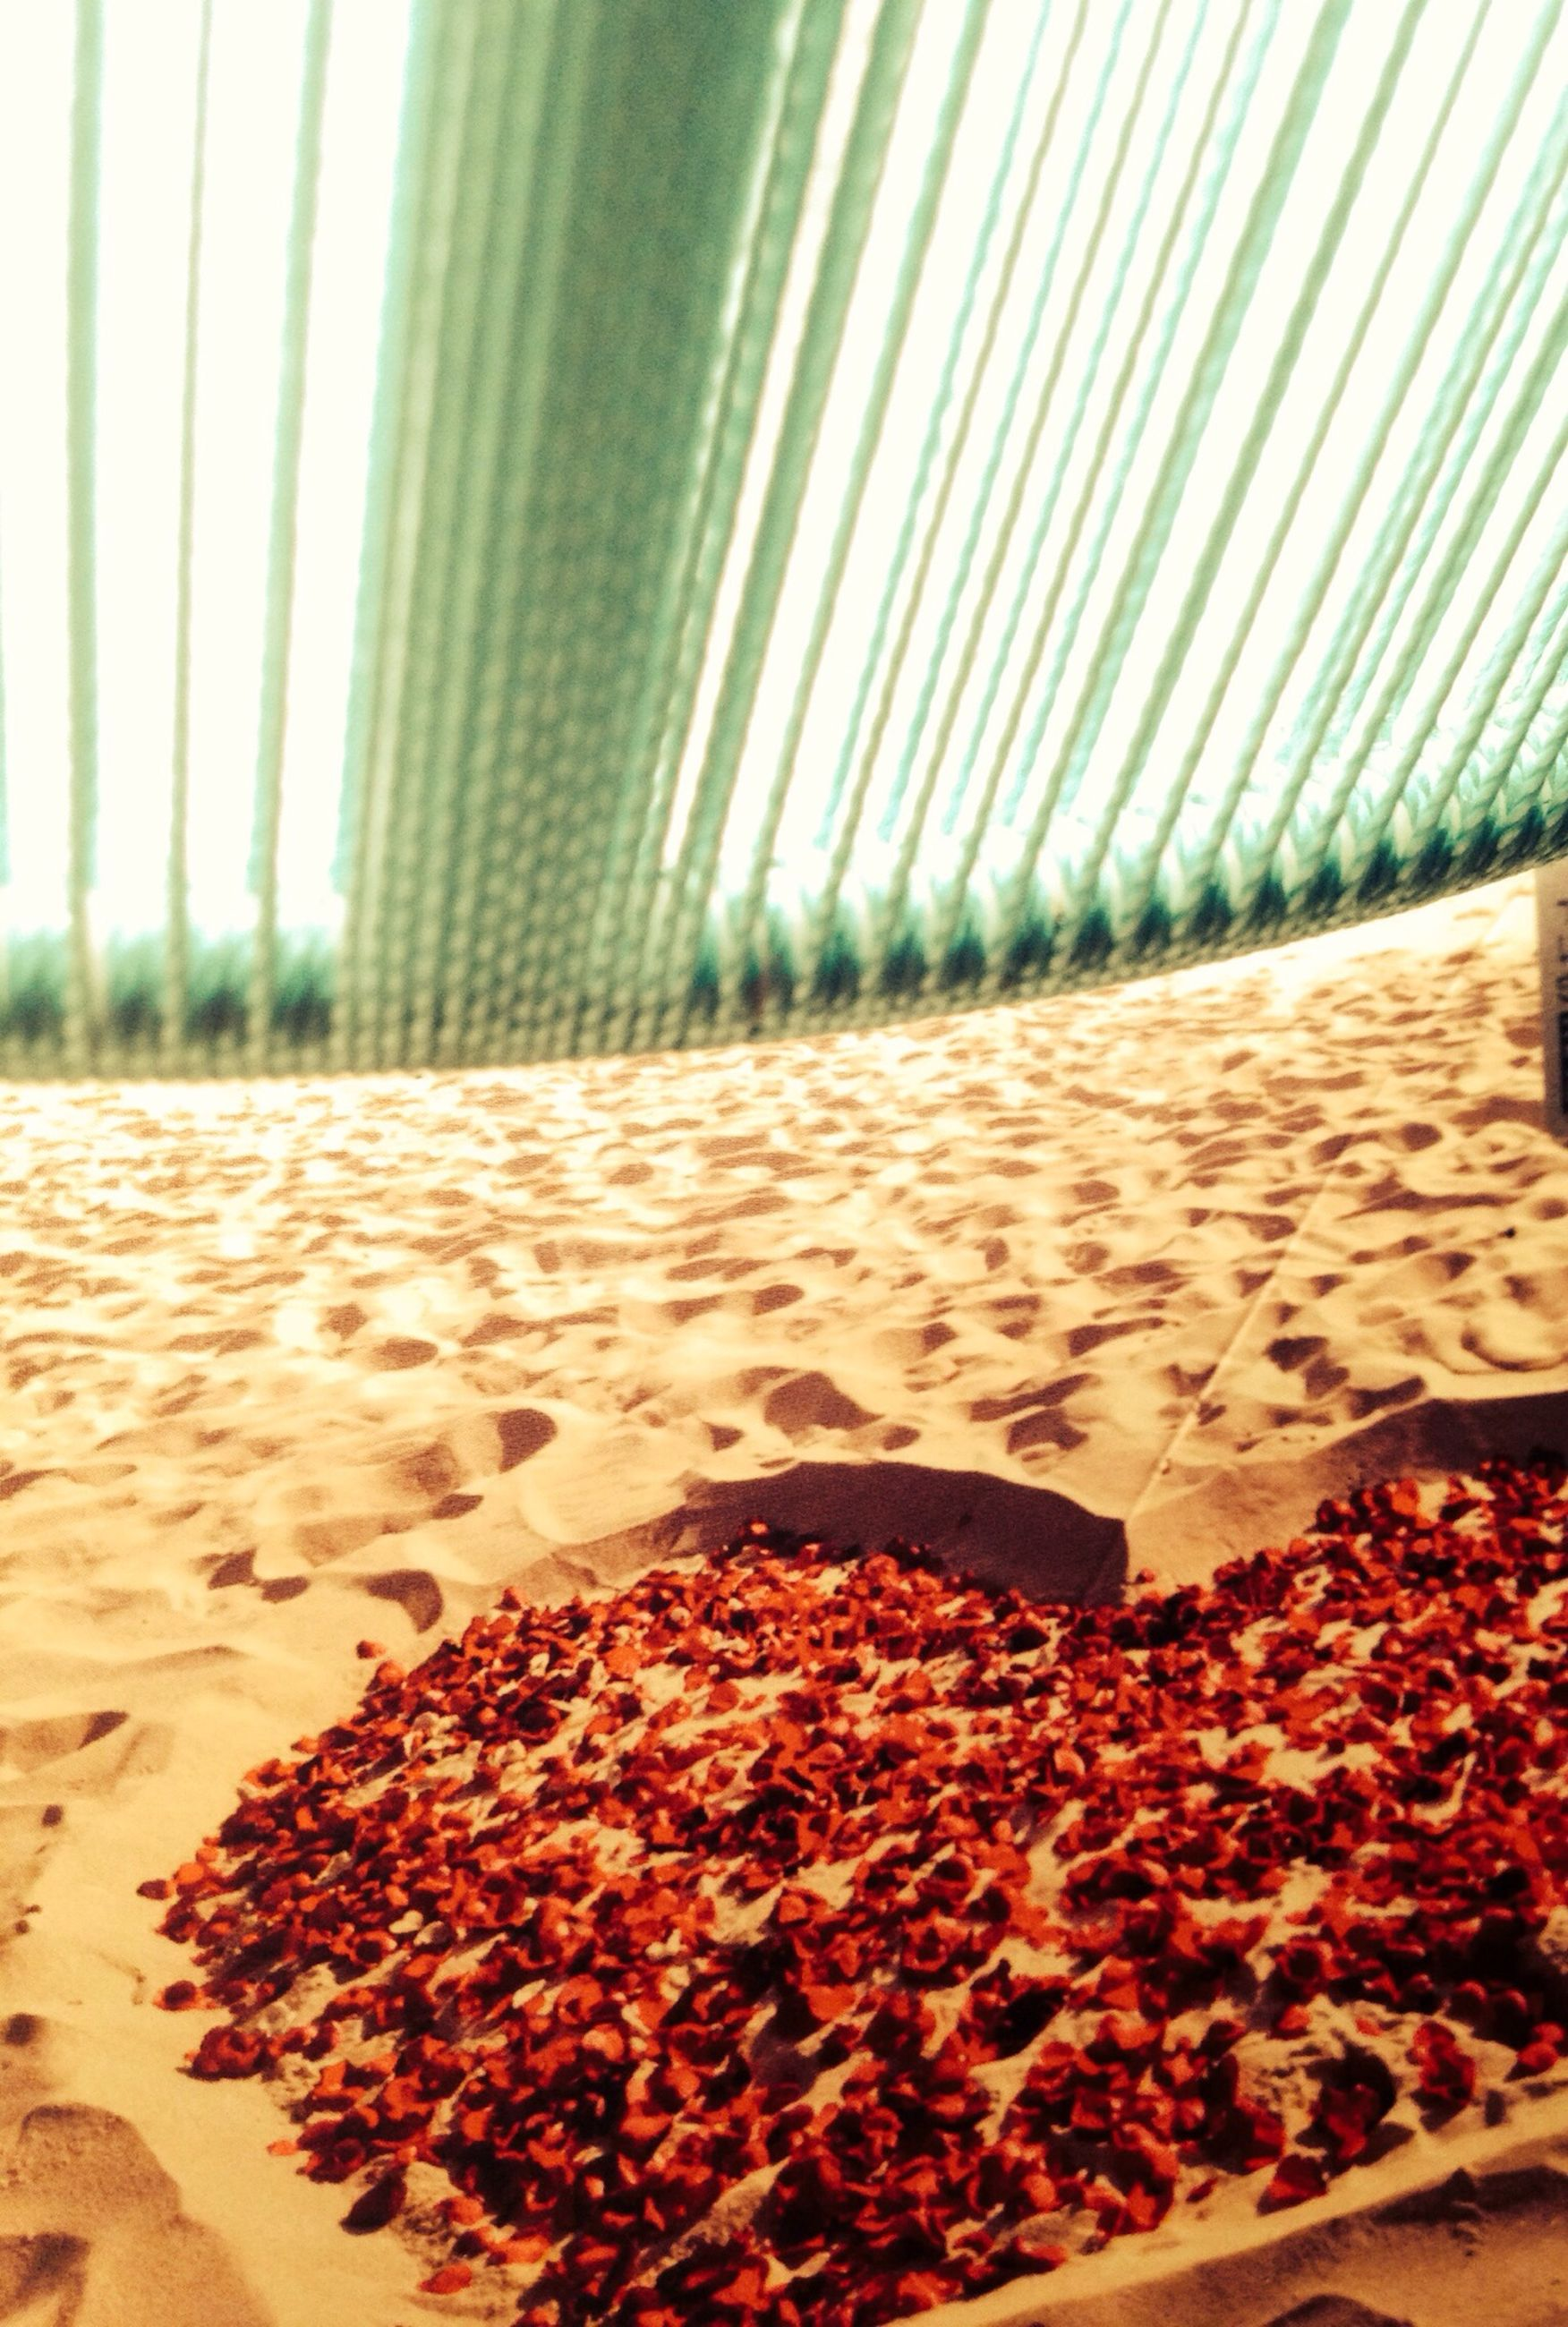 beach, sand, sunlight, leaf, agriculture, day, nature, no people, growth, outdoors, close-up, plant, surface level, shadow, abundance, tranquility, shore, red, pattern, selective focus